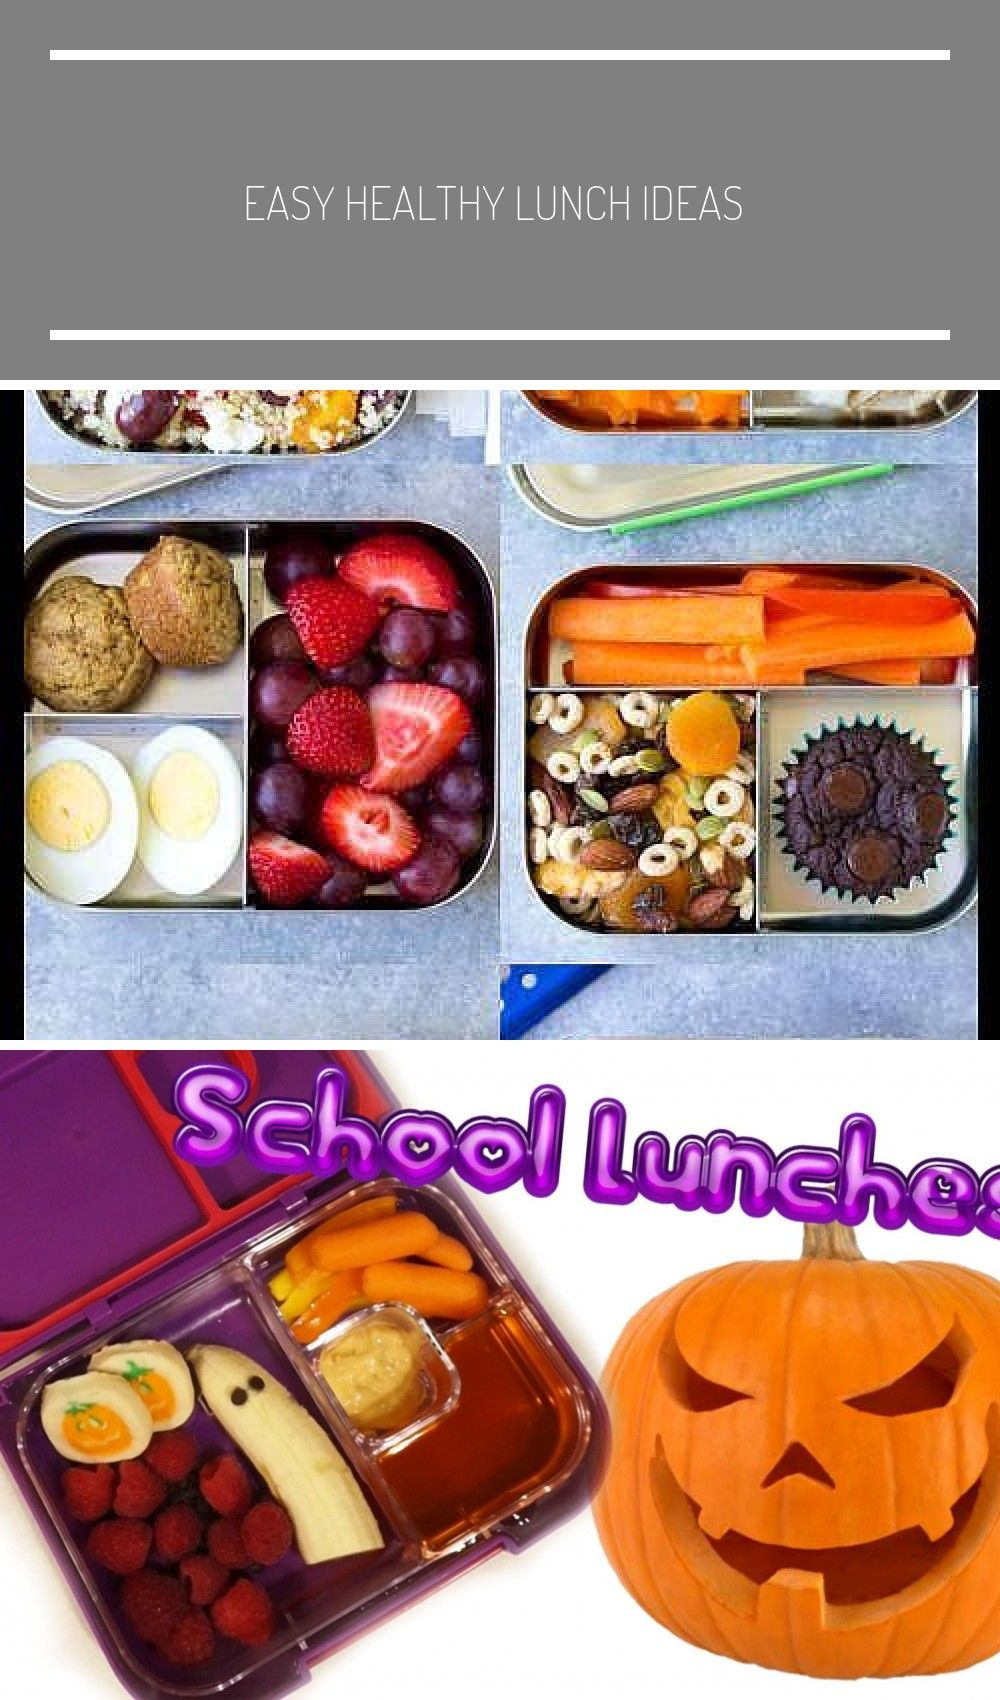 EASY Healthy Lunch Ideas for Kids Bento box lunchbox ideas to pack for school home or even for you